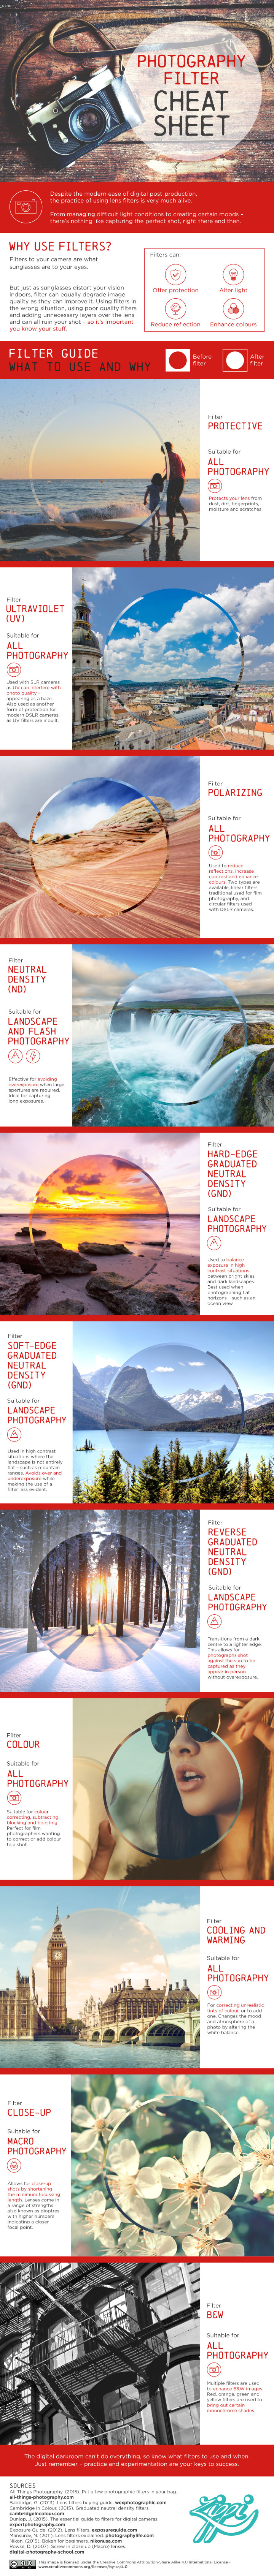 The Photography Filters Cheat Sheet, an Infographic from The Studio at Zippi.